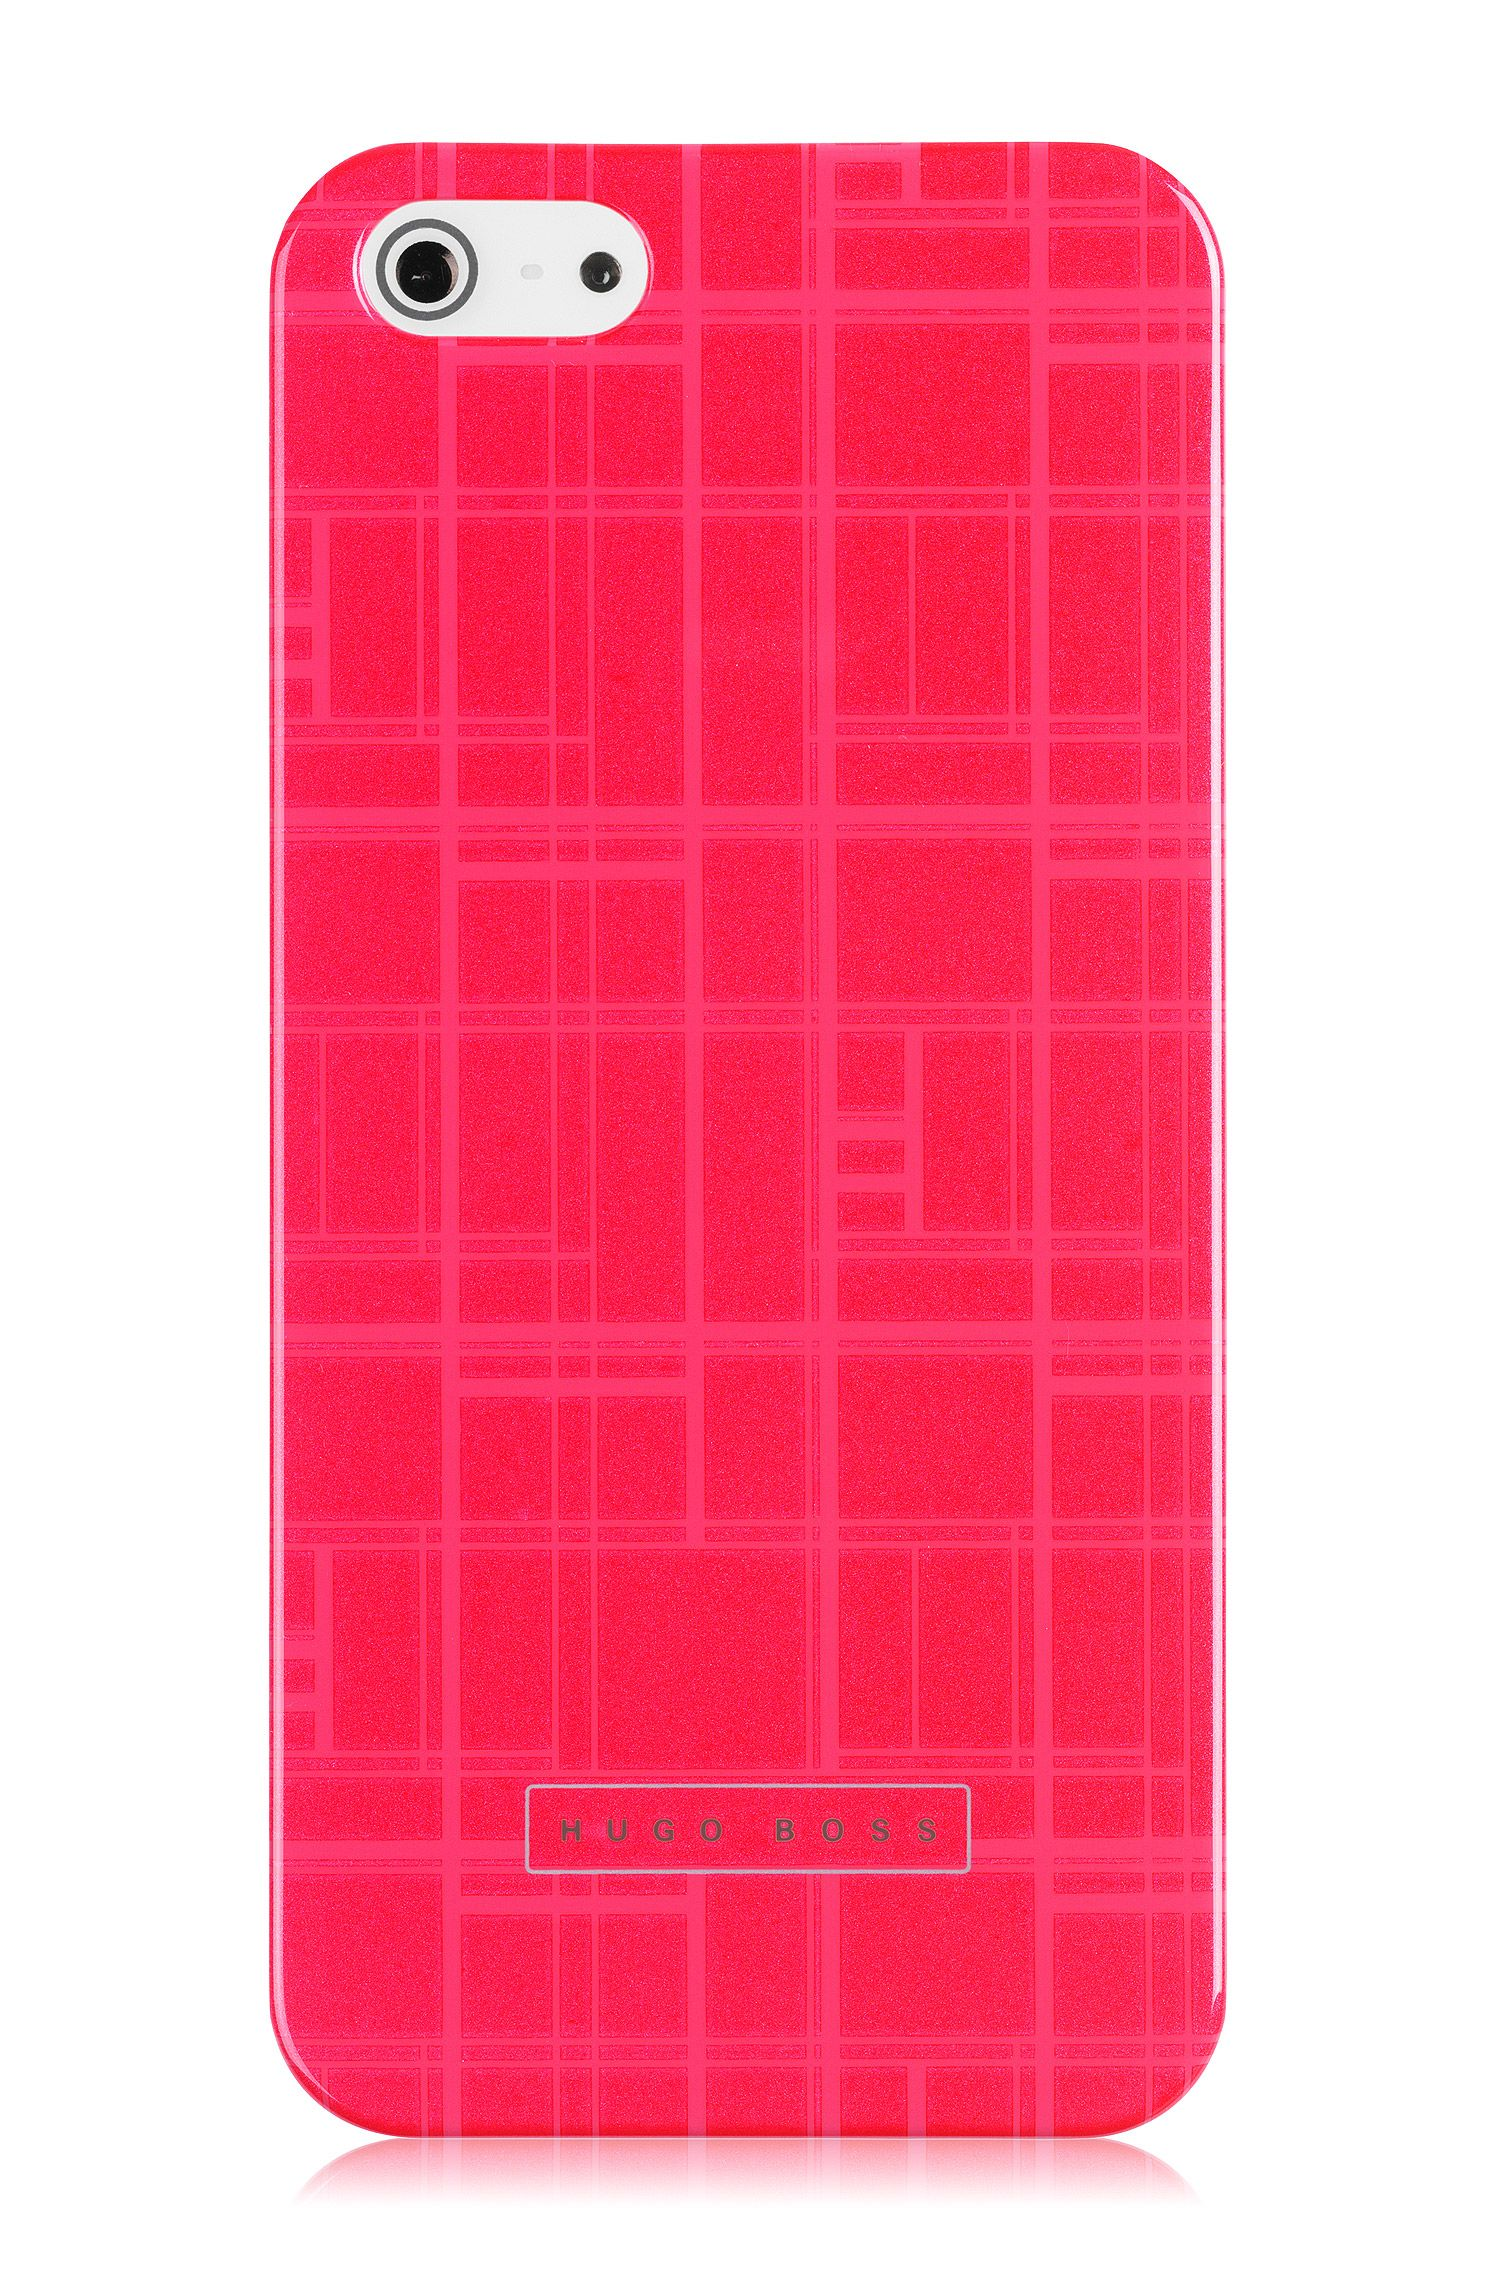 Hardcover 'Catwalk IP5 Pink' voor iPhone 5/5S